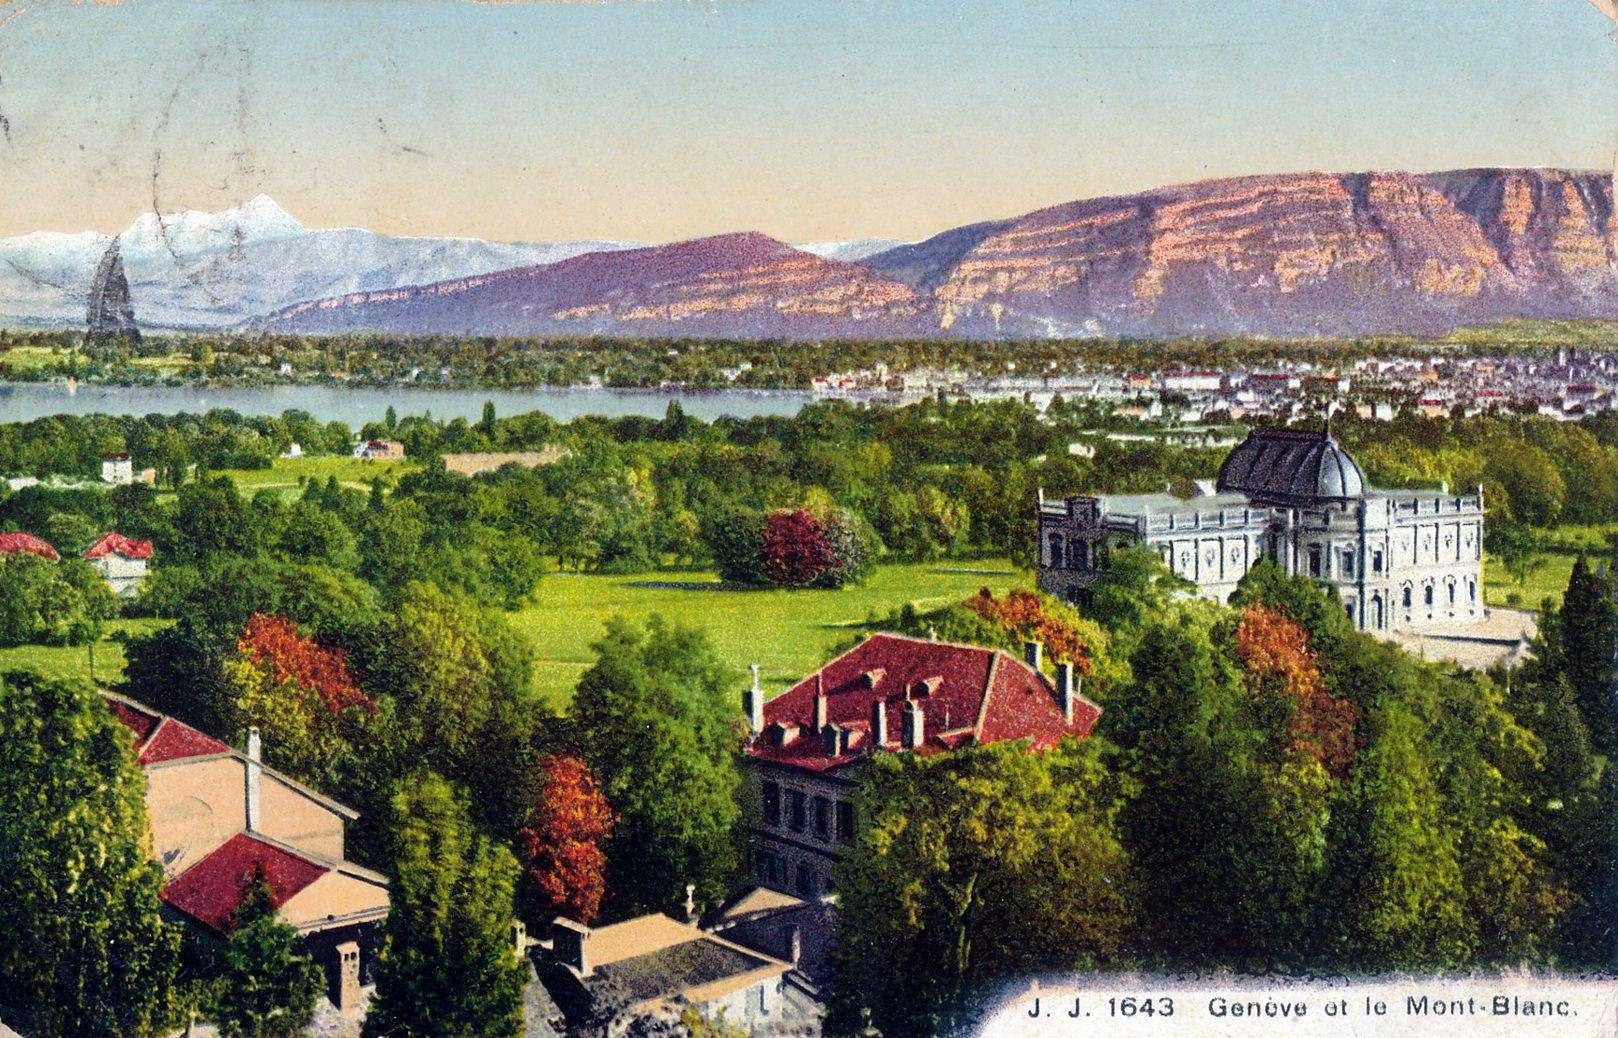 Vintage postcard of Geneva with a hand-drawn over Genève, the Salève and the Mont Blanc.